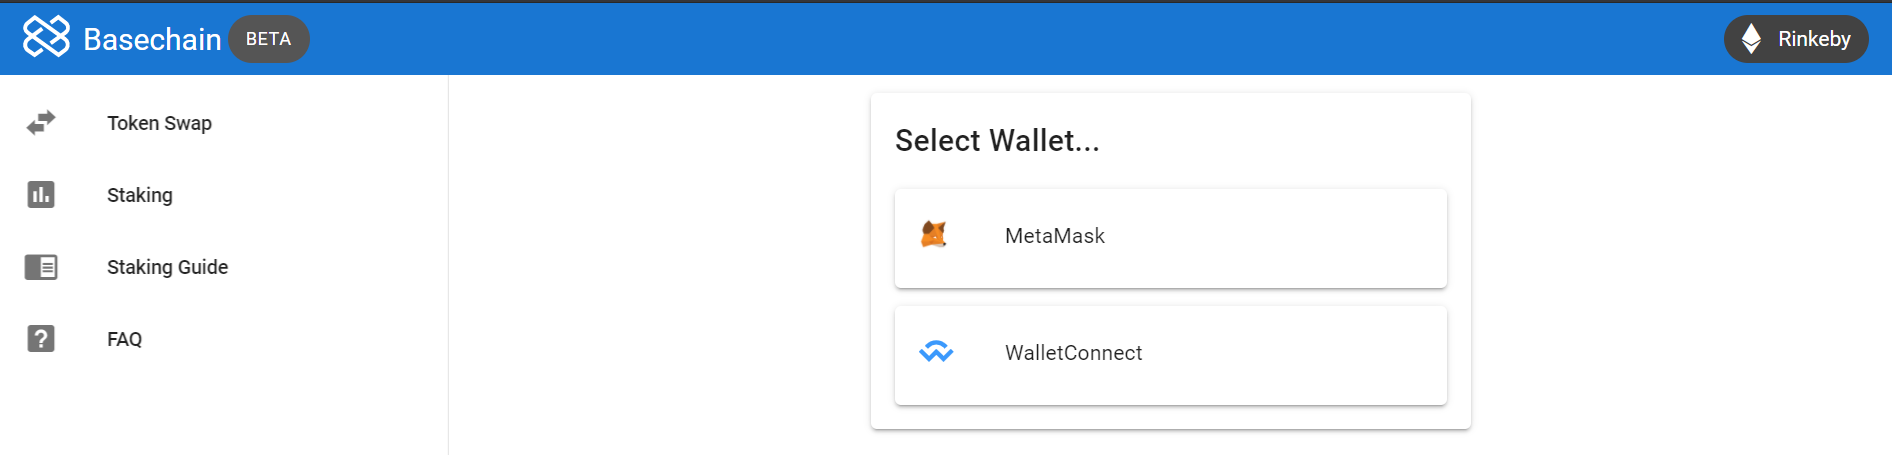 Wallet selection page on the new dashboard